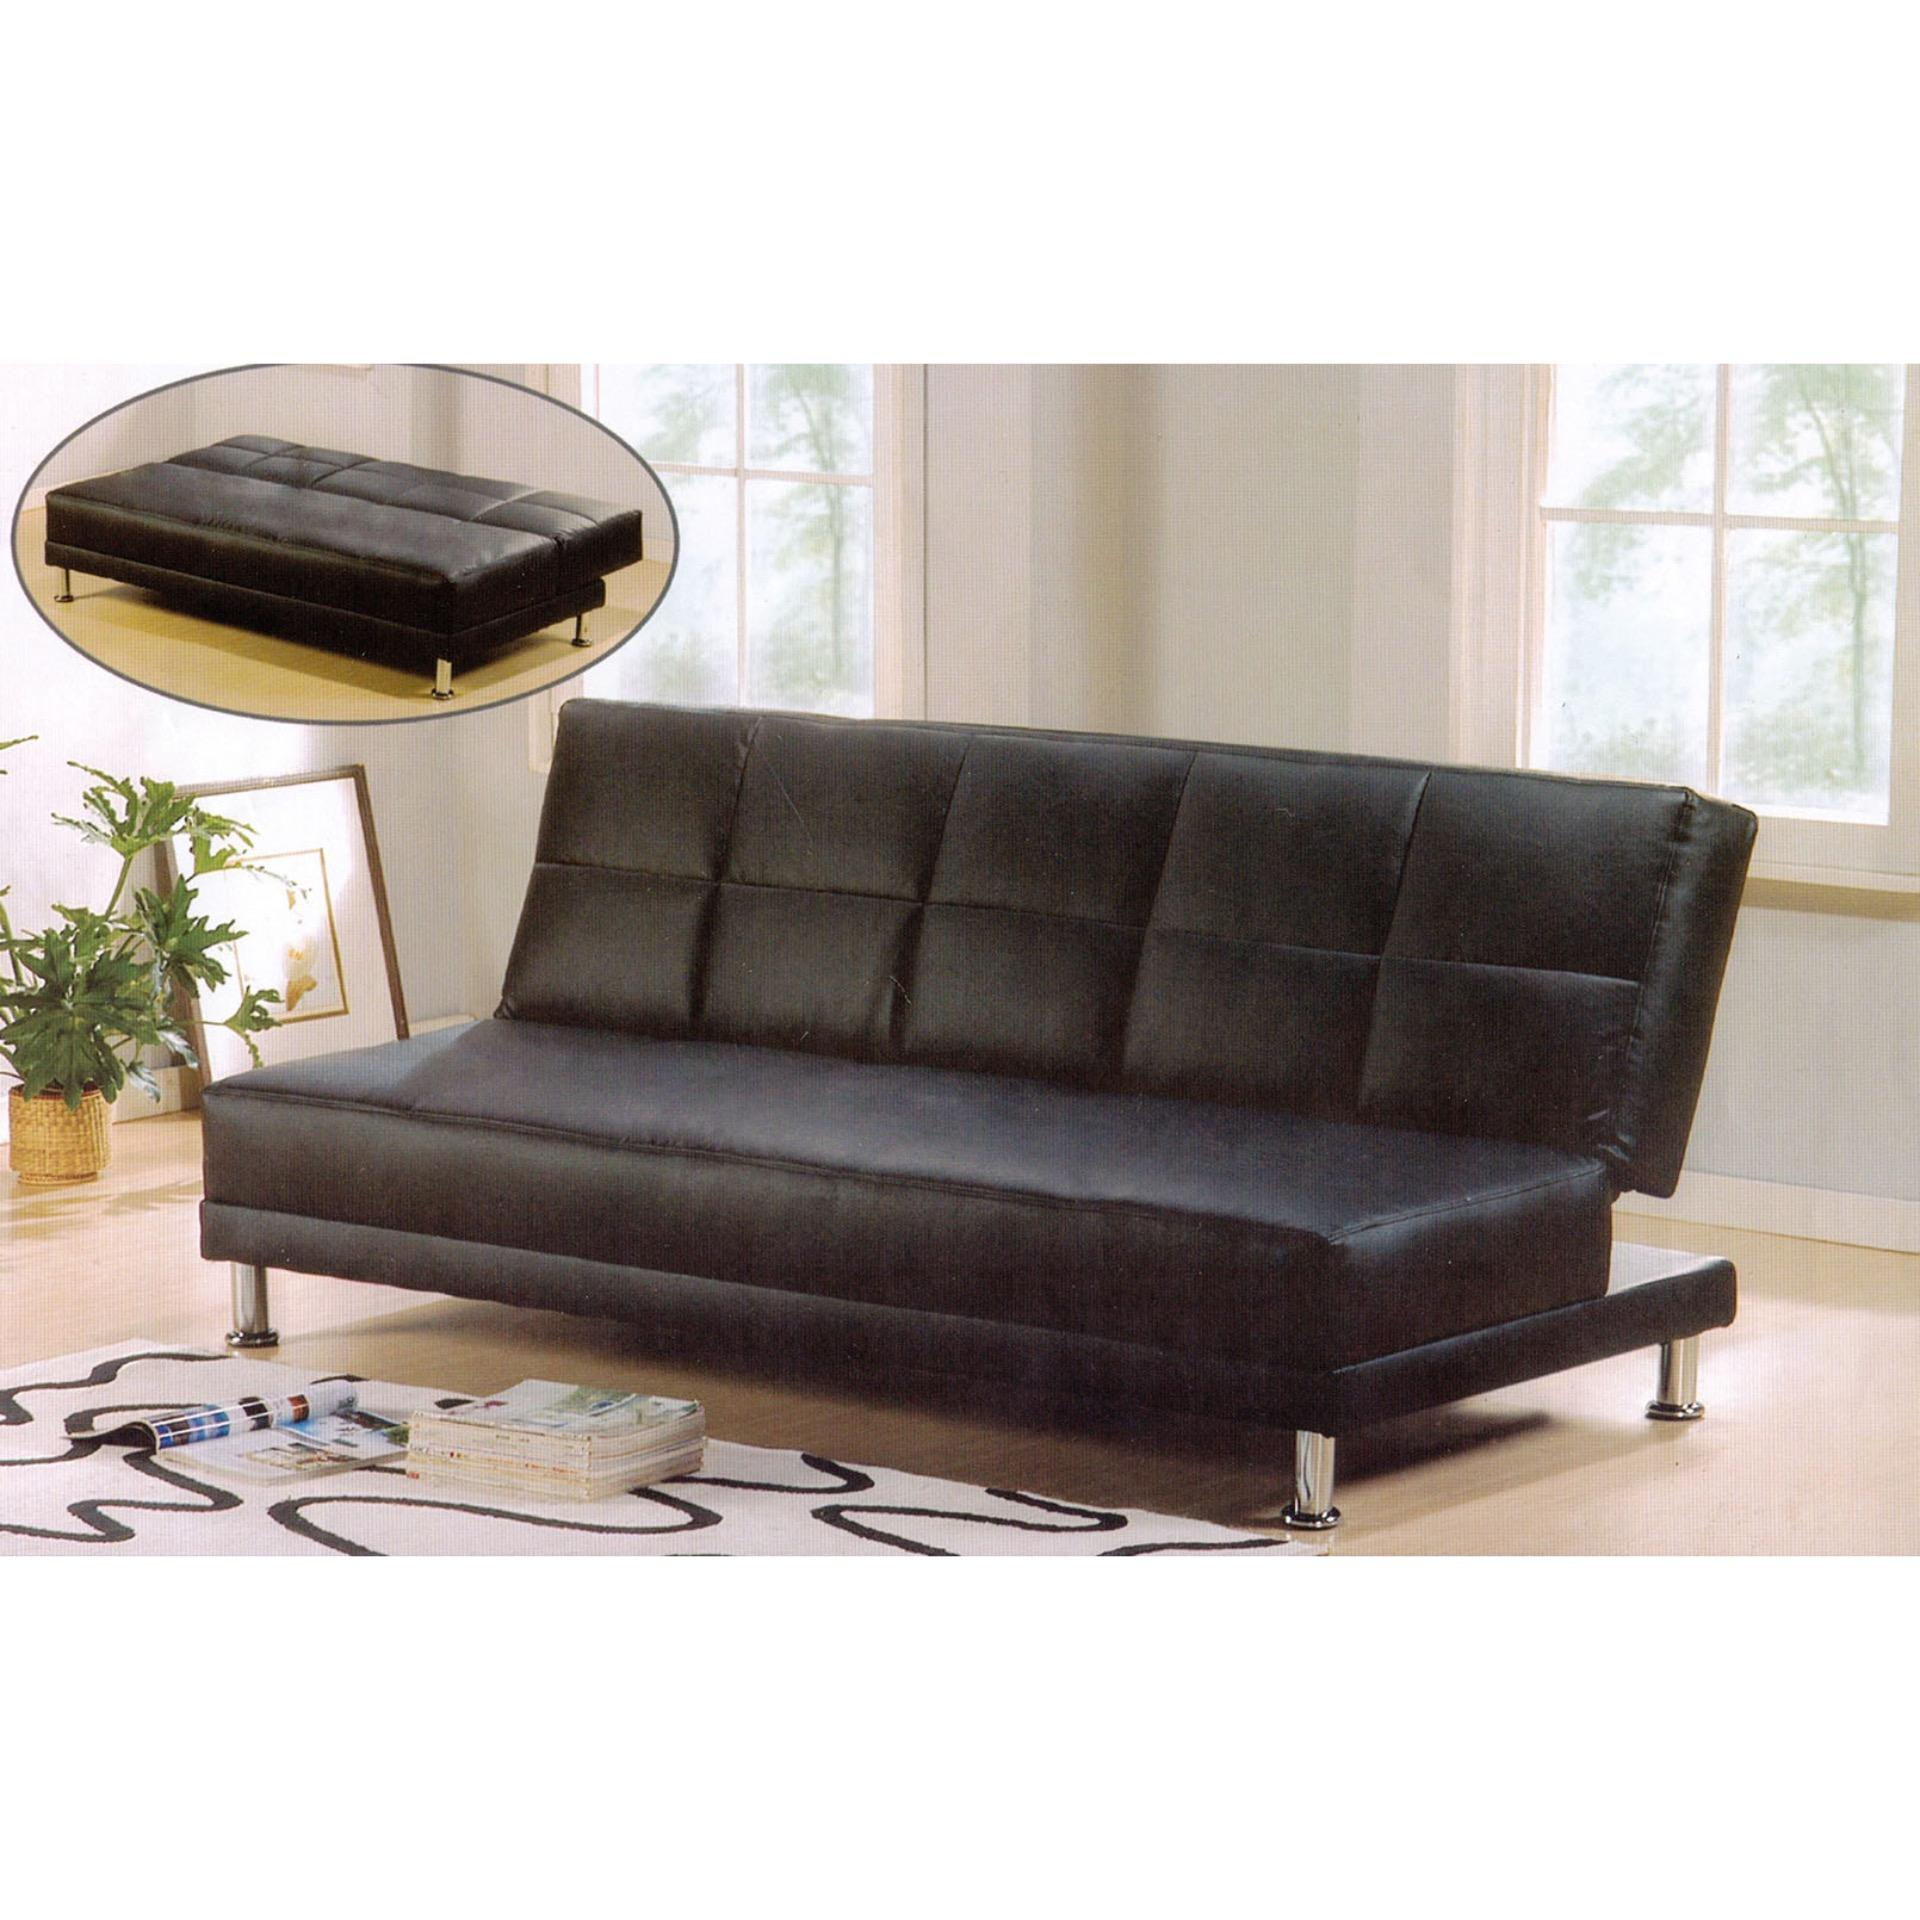 Black Good Leather Sofa Bed Room Sofa Bed Office Sofa Bed Living Room